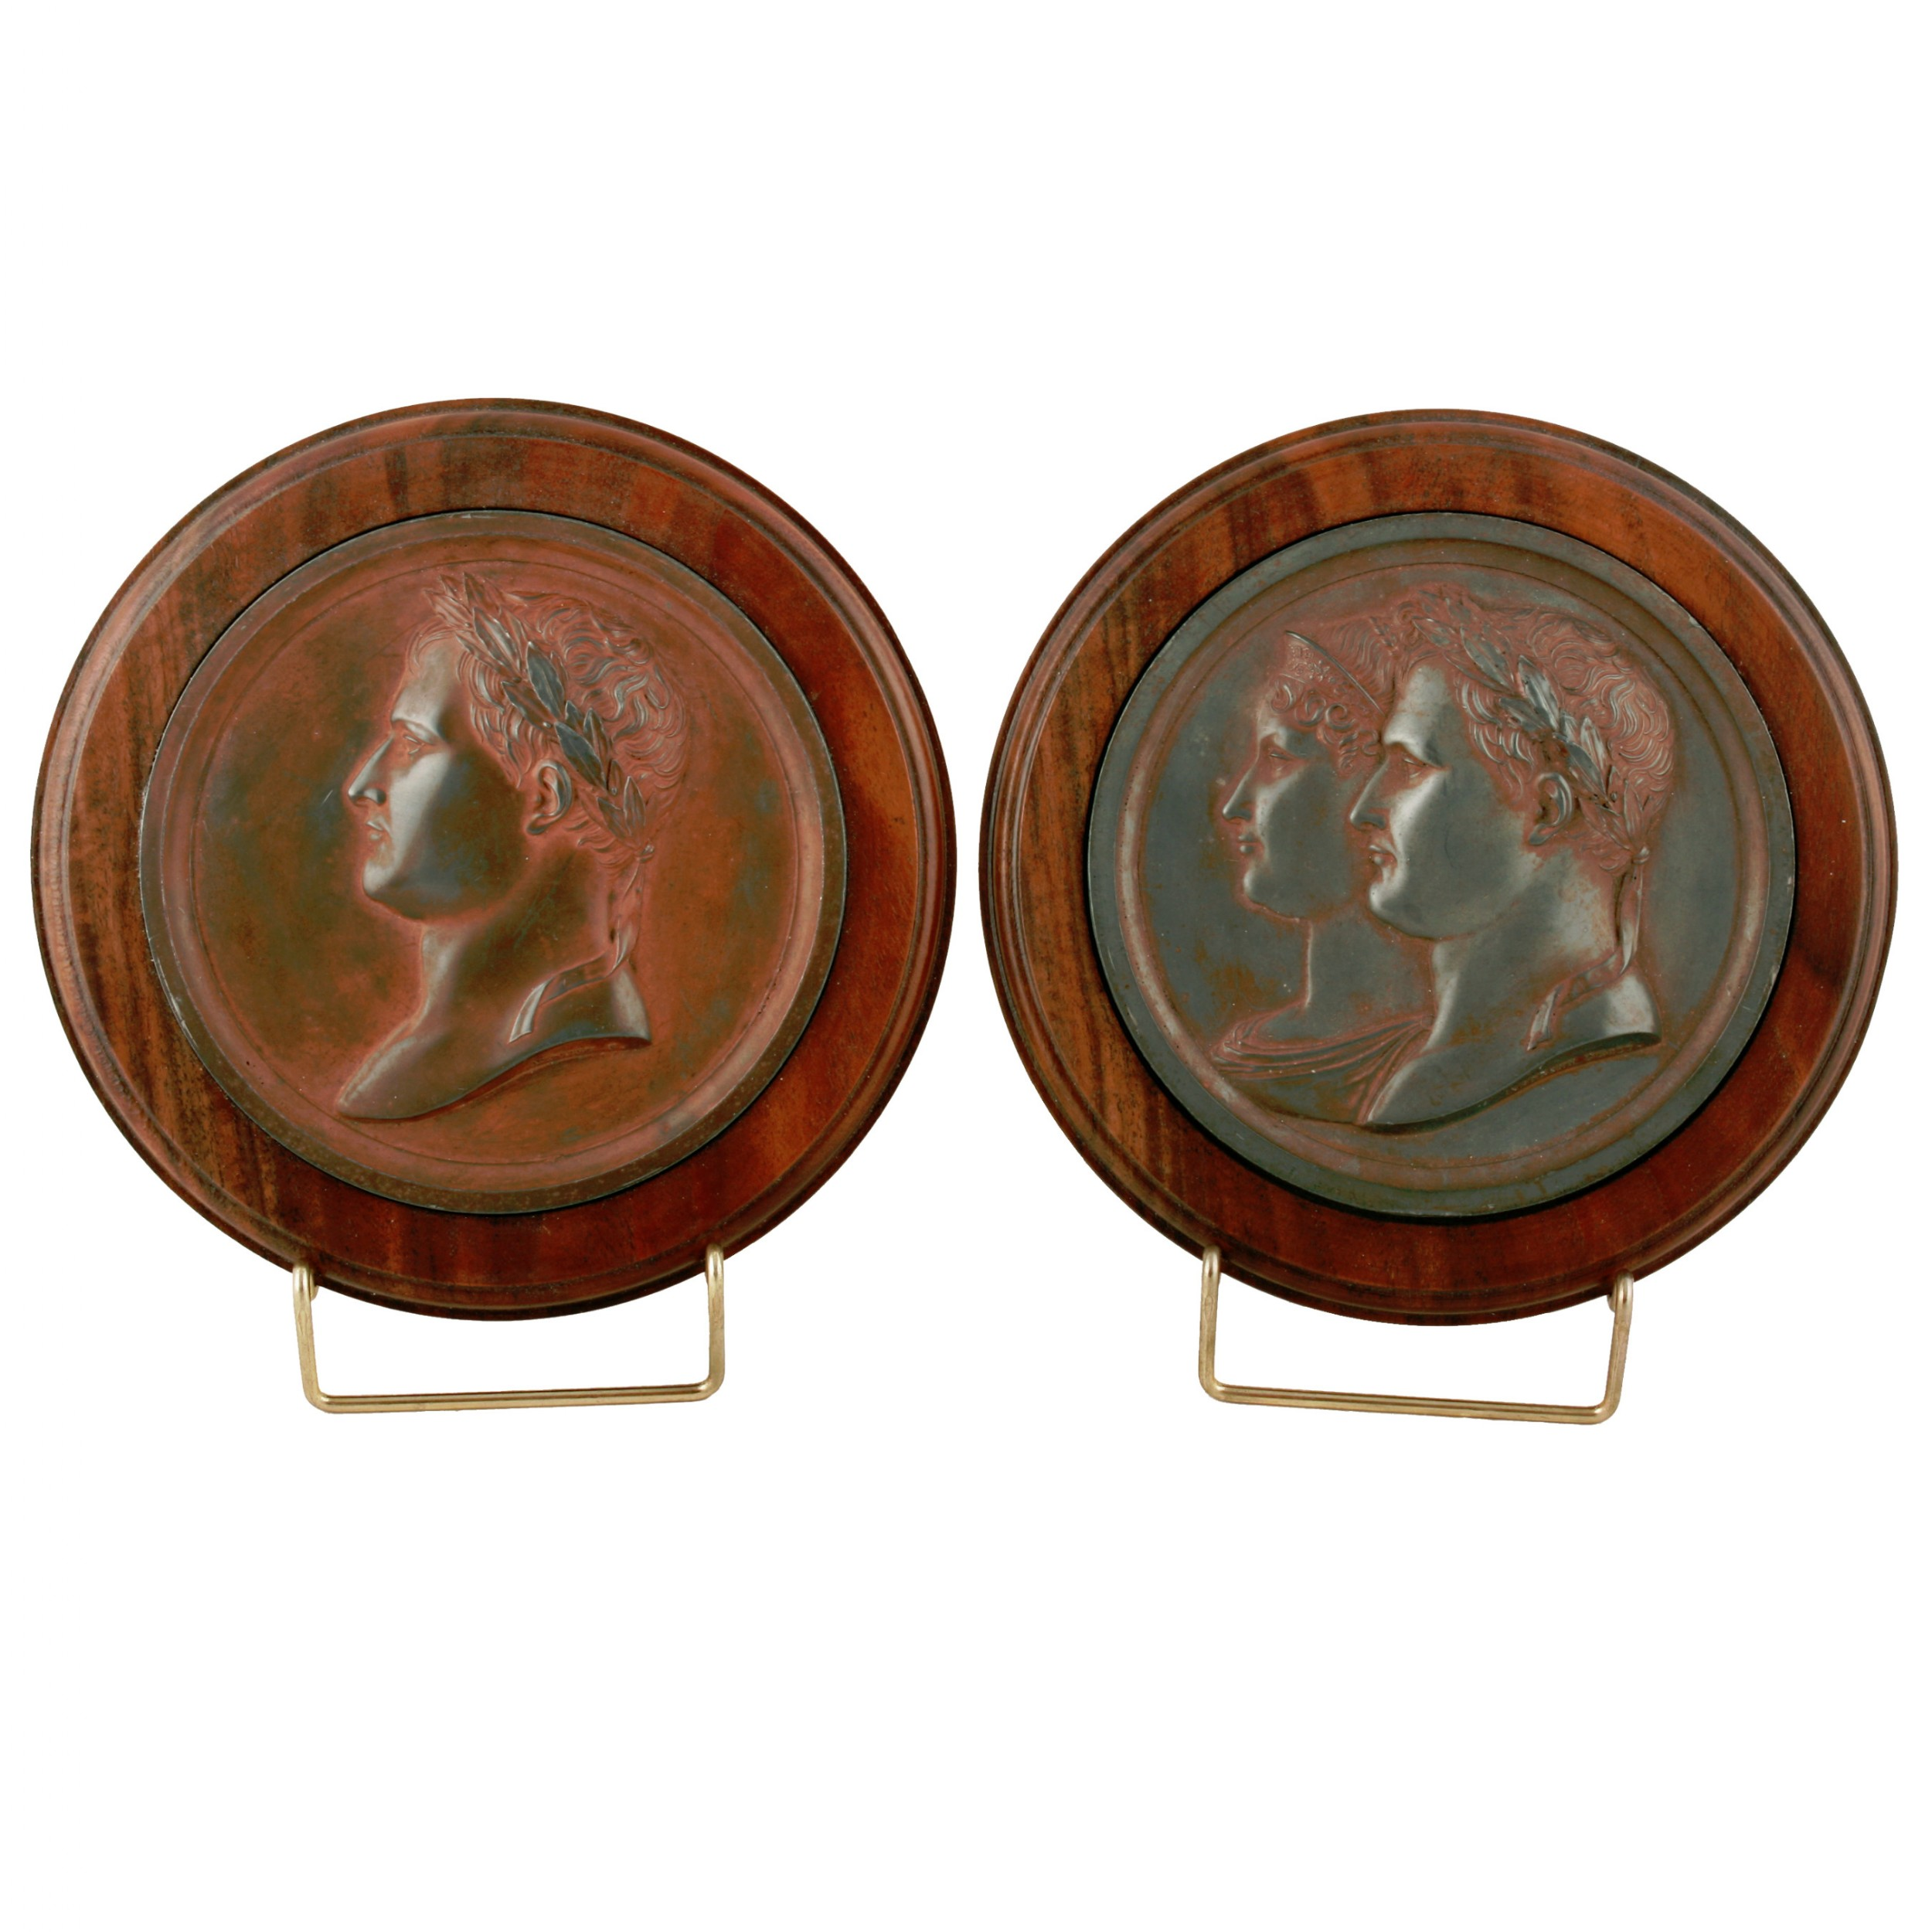 pair of french empire bronzed lead medals